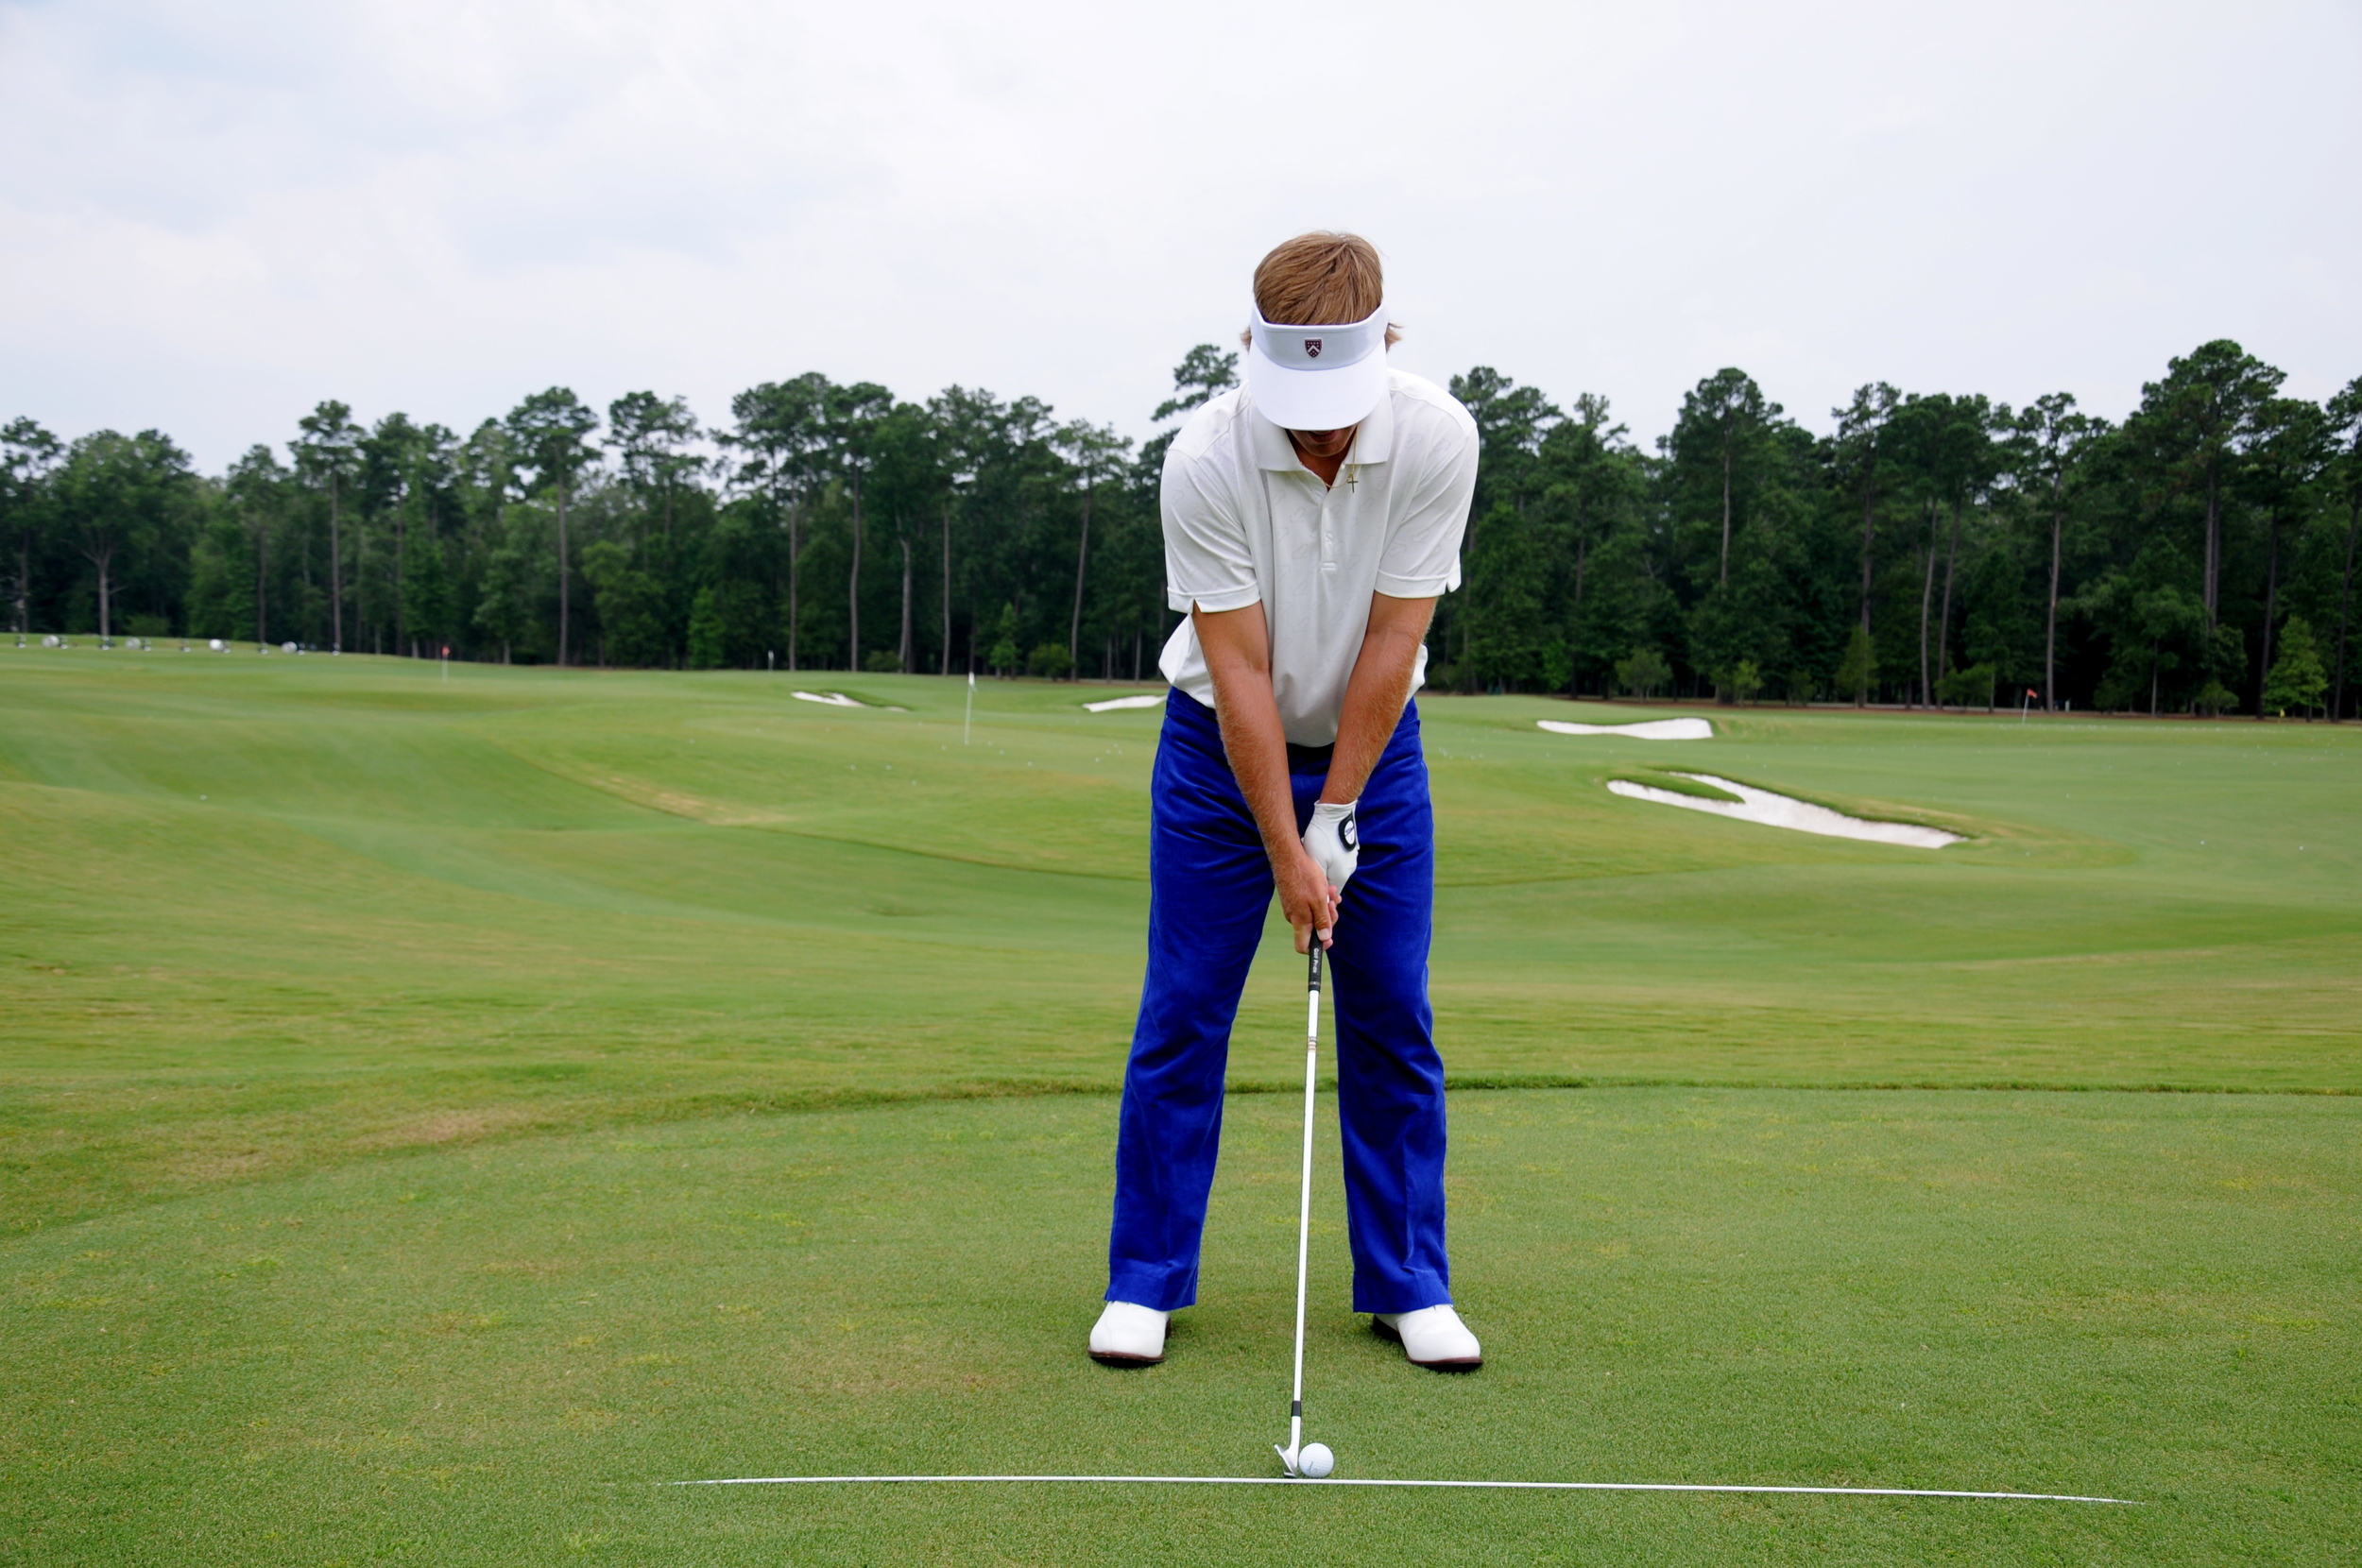 Ball Position with a Middle Iron